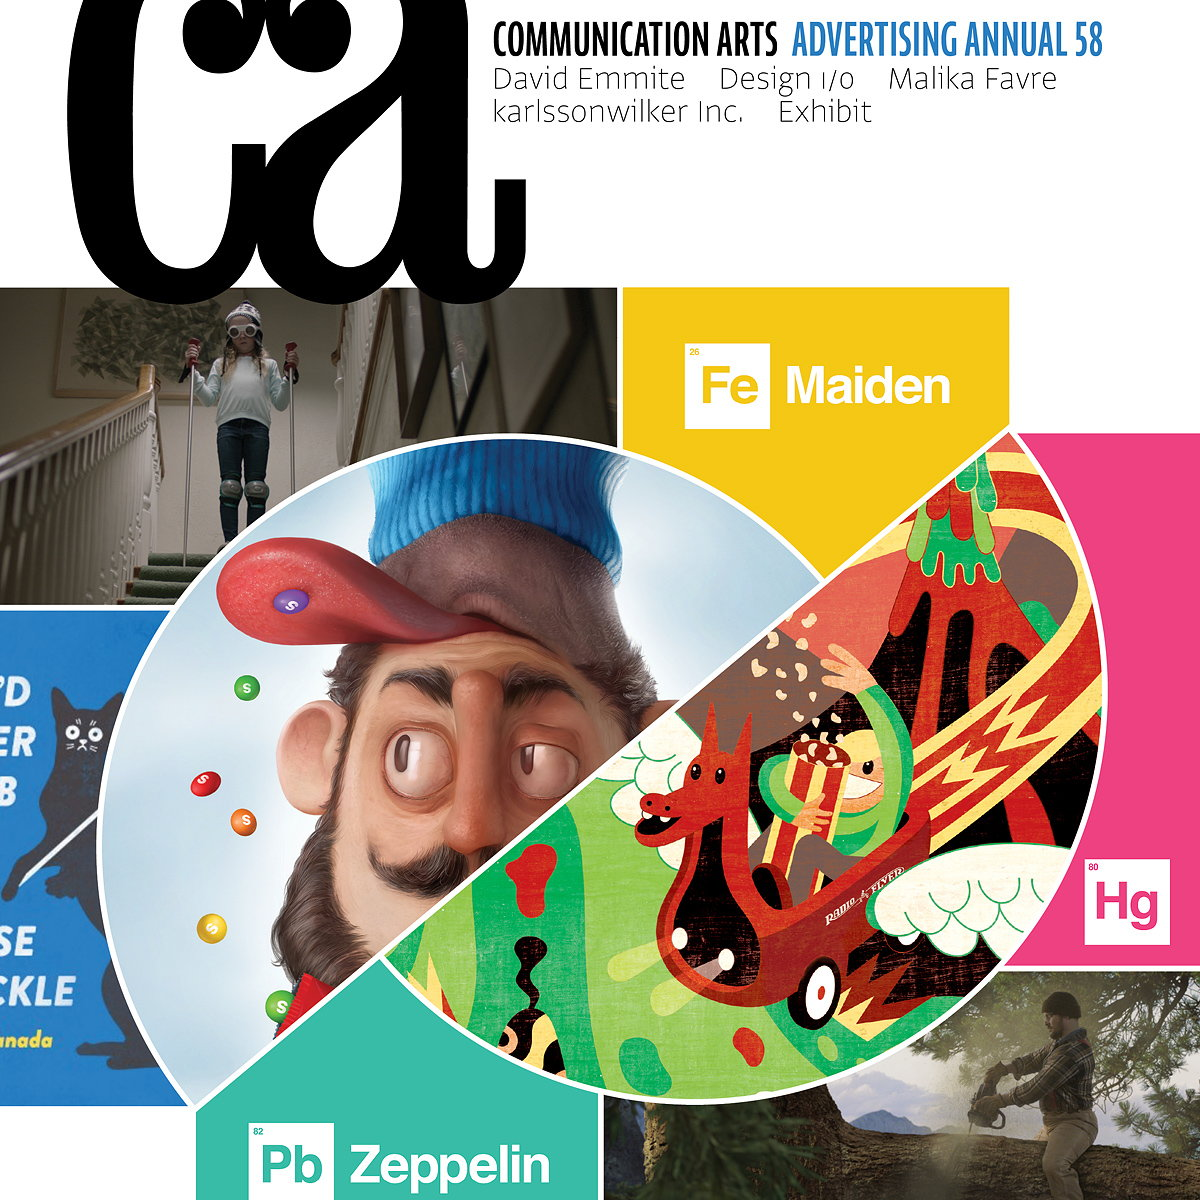 Communication Arts Publishes Advertising Annual 58